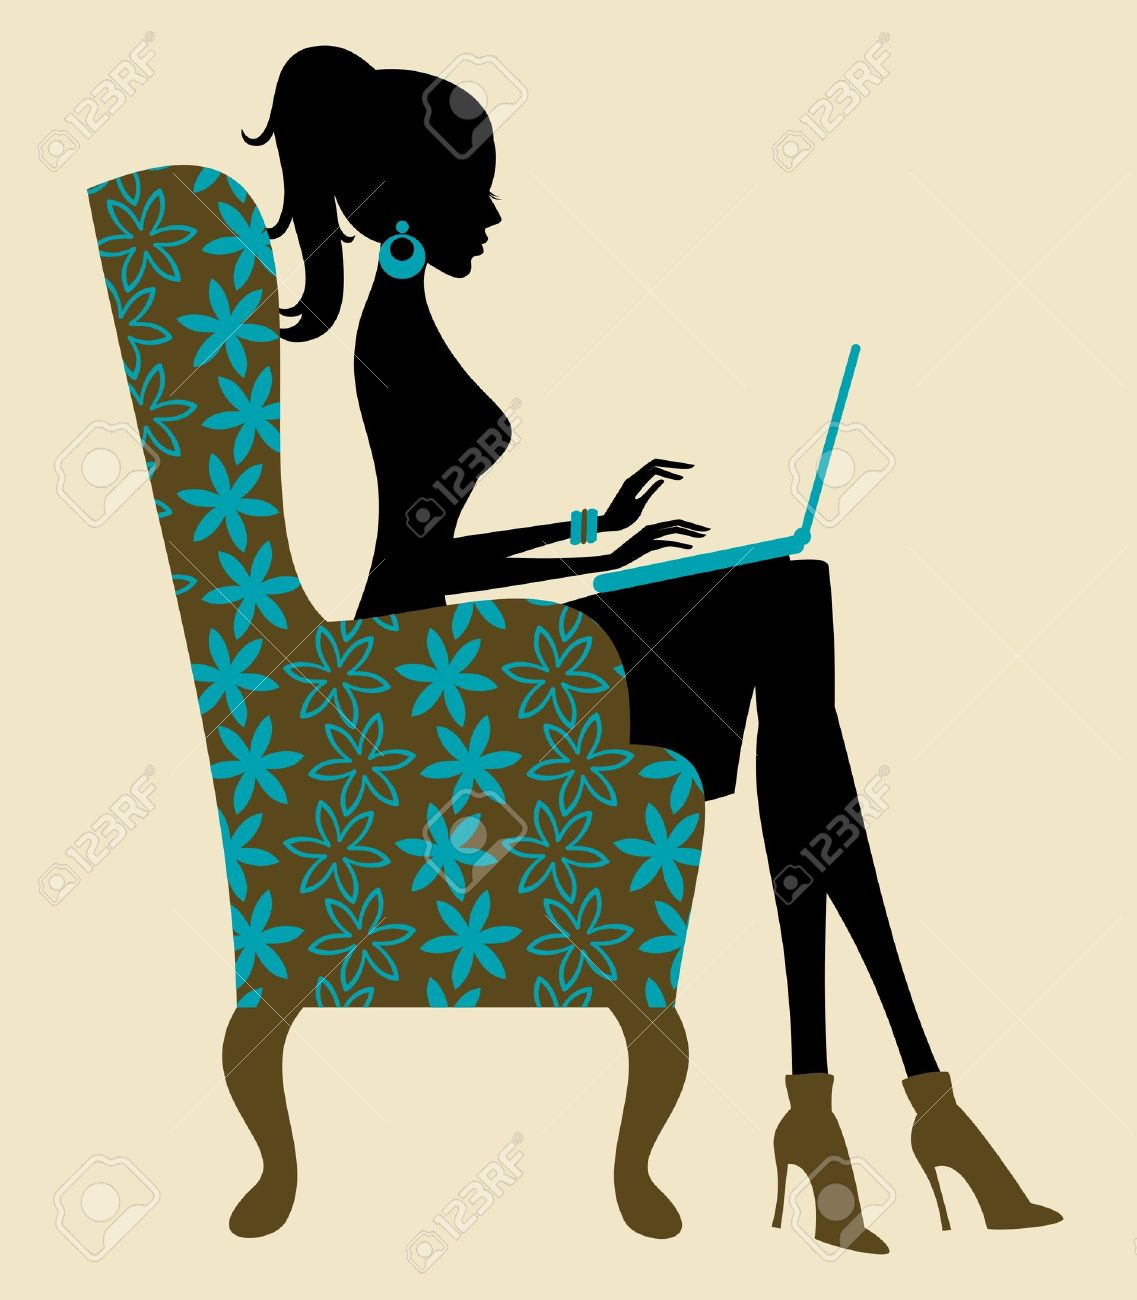 Illustration of a young woman working on laptop Stock Vector - 13750175